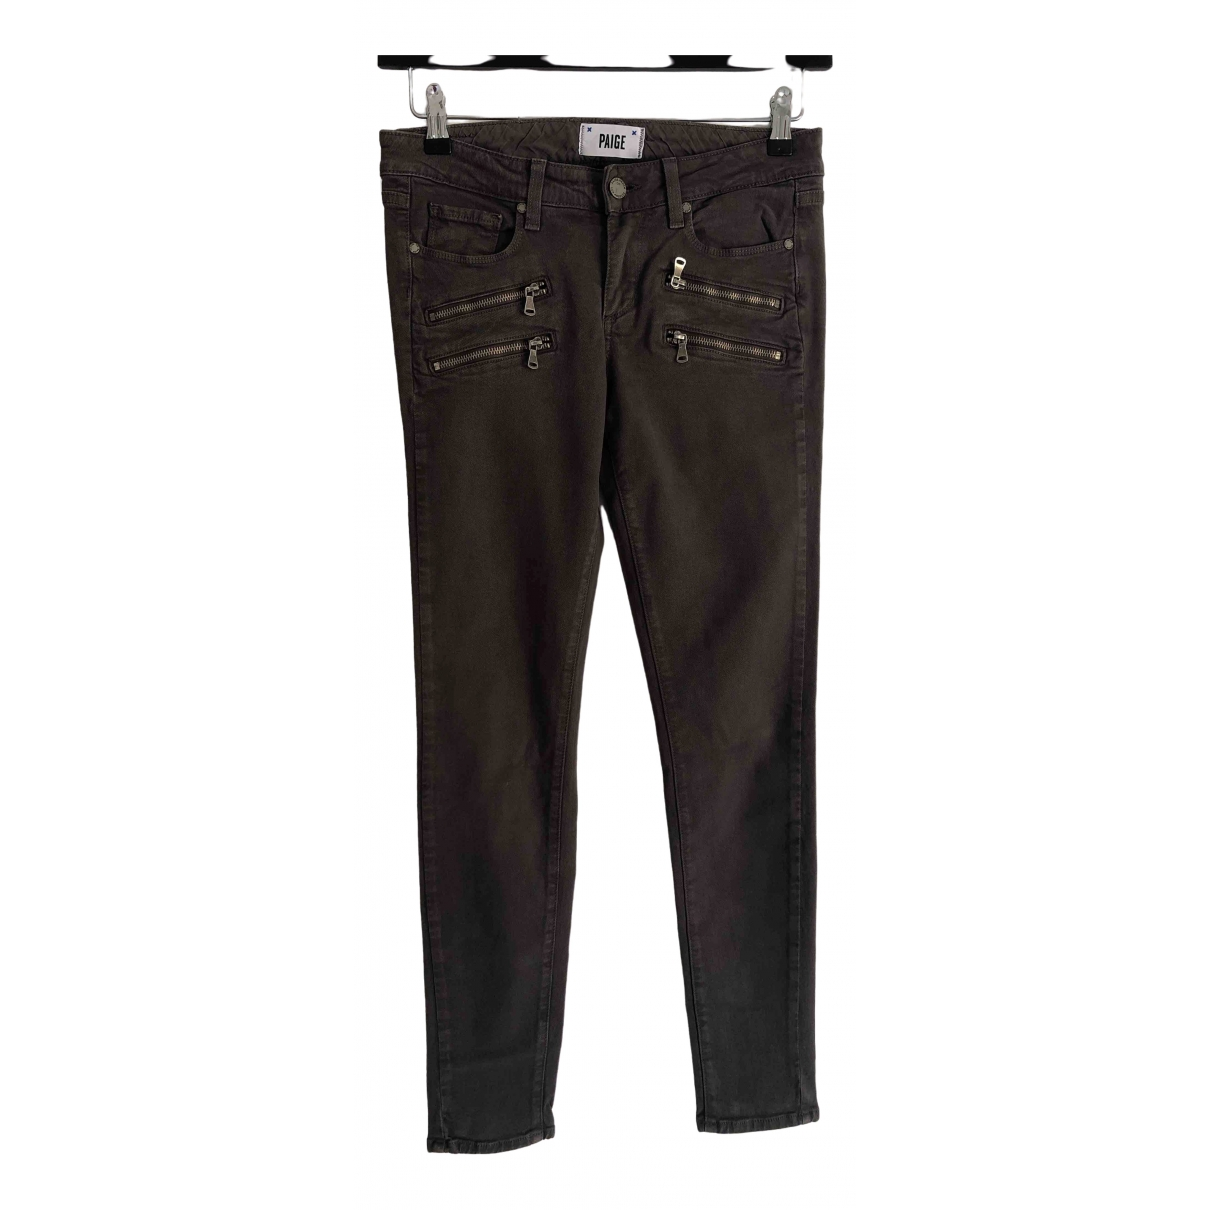 Paige Jeans \N Brown Cotton Trousers for Women S International